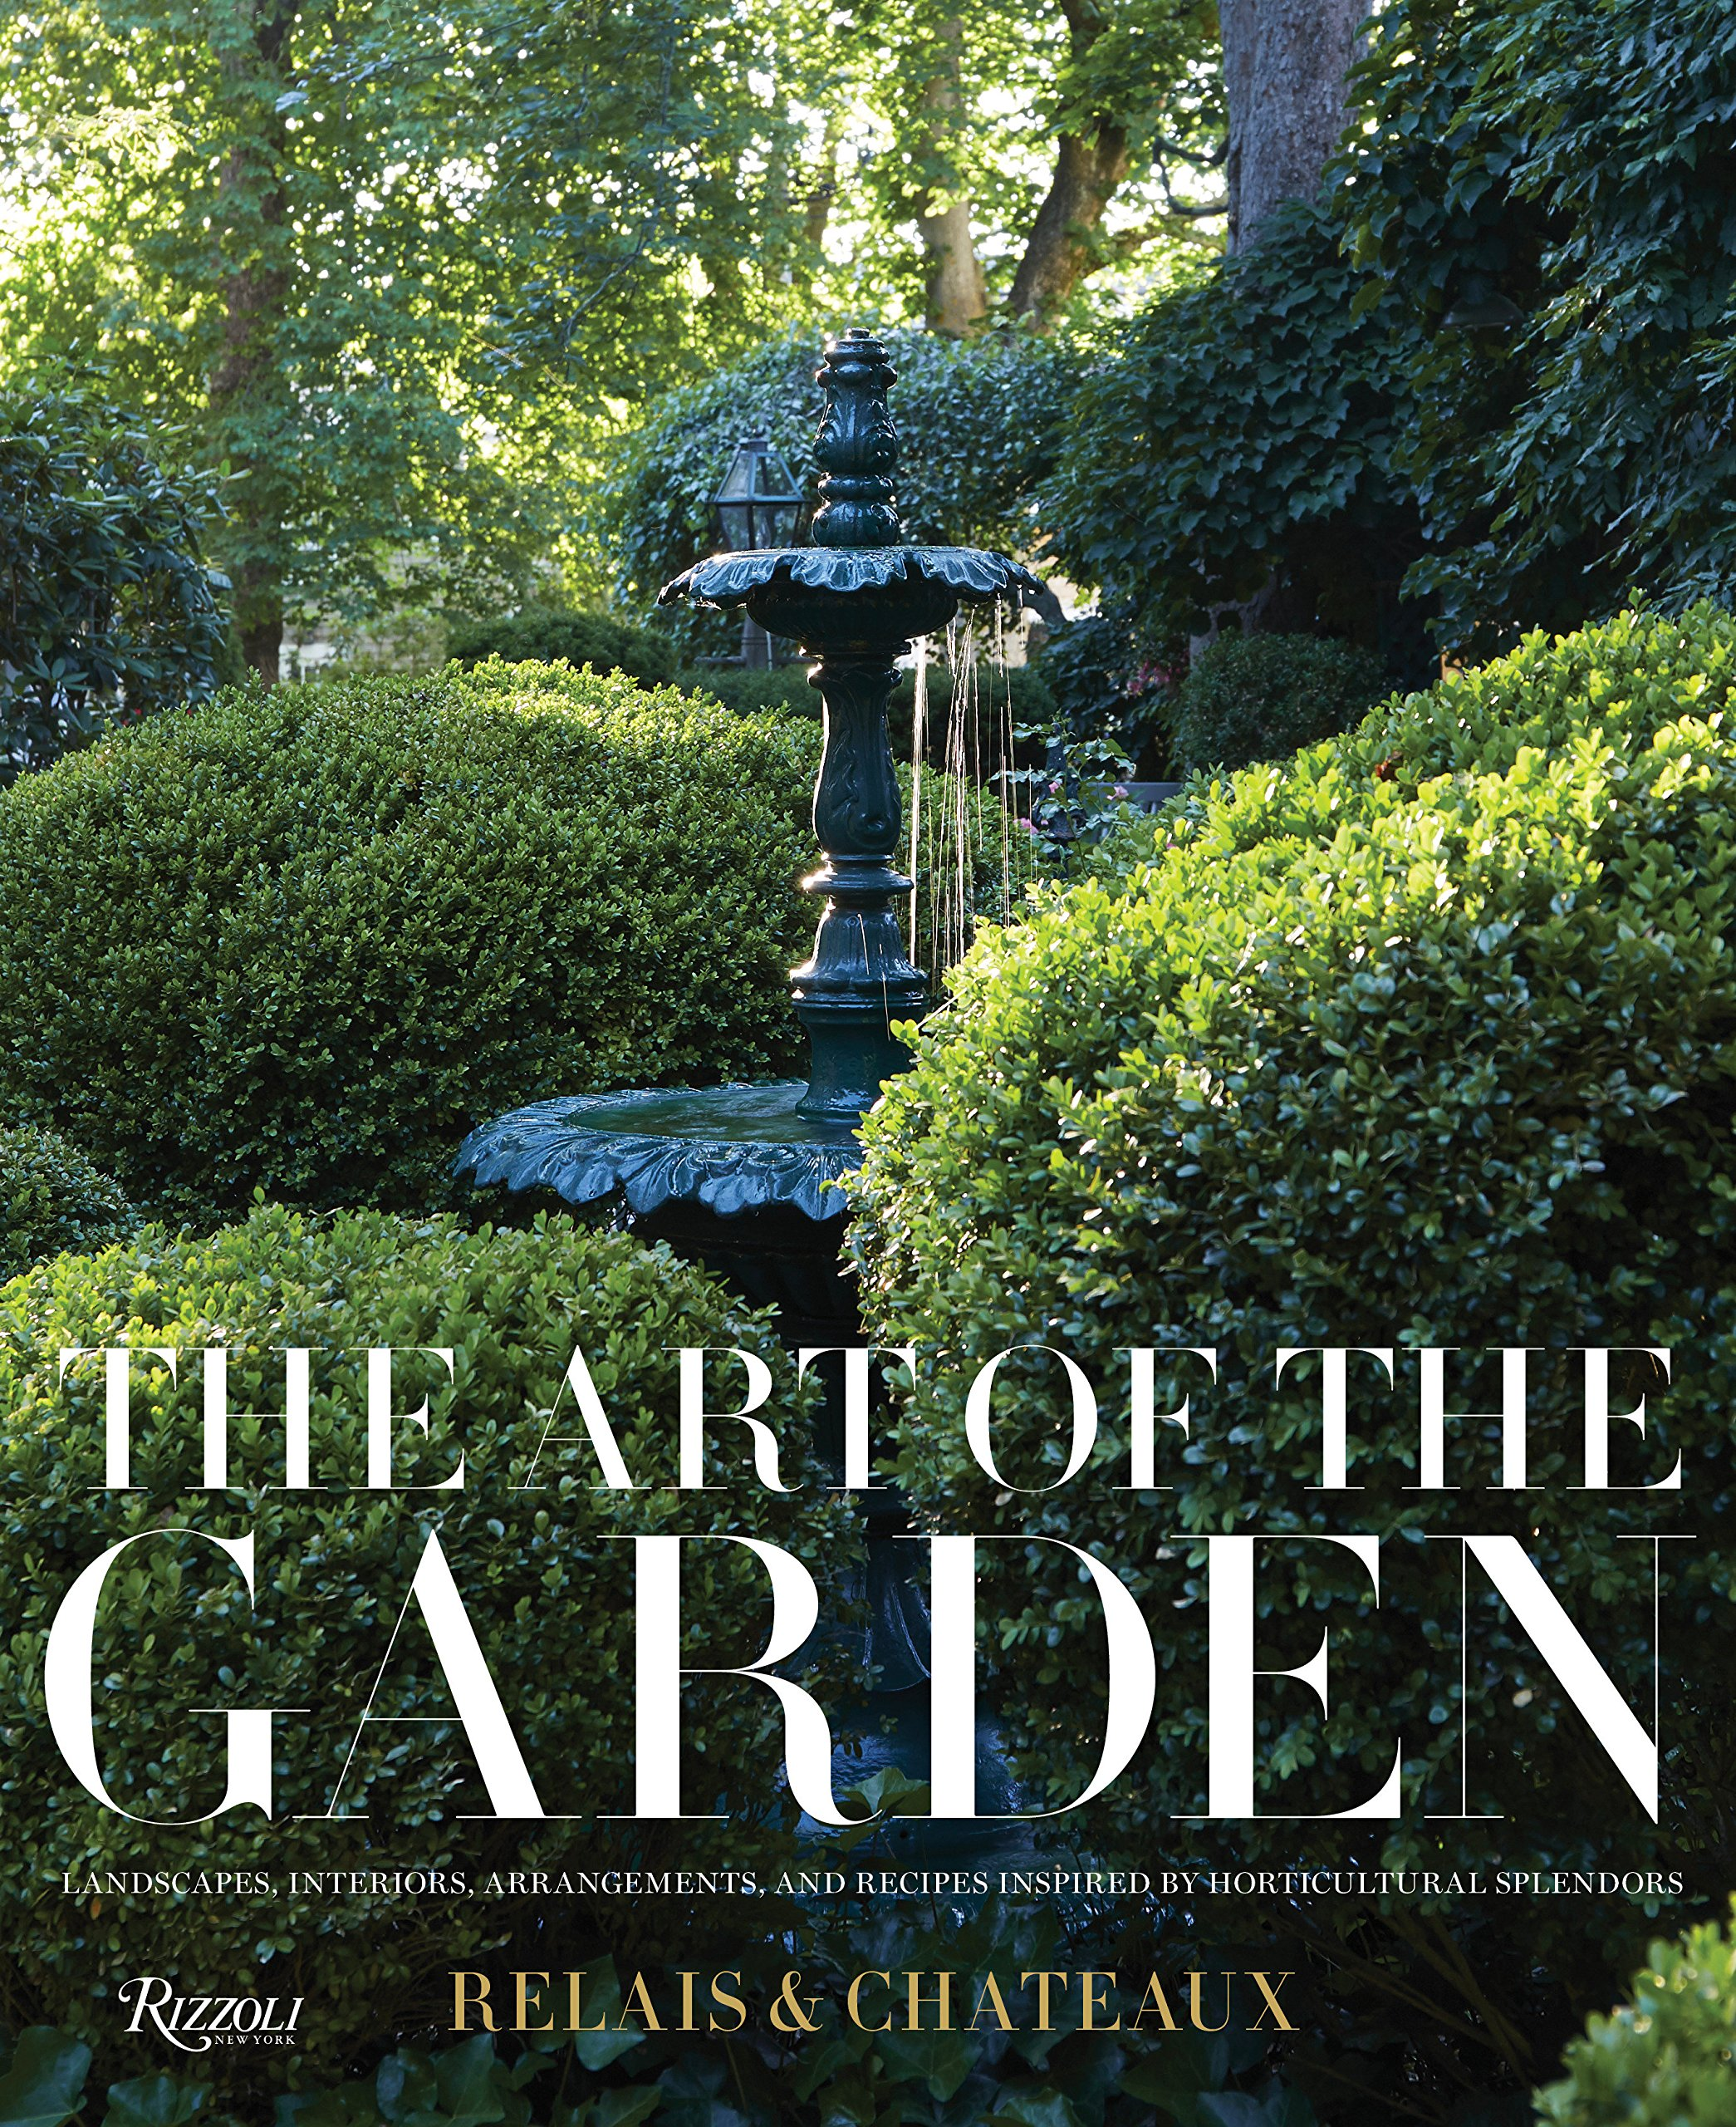 The Art of the Garden: Landscapes, Interiors, Arrangements, and Recipes Inspired by Horticultural  Splendors by Rizzoli